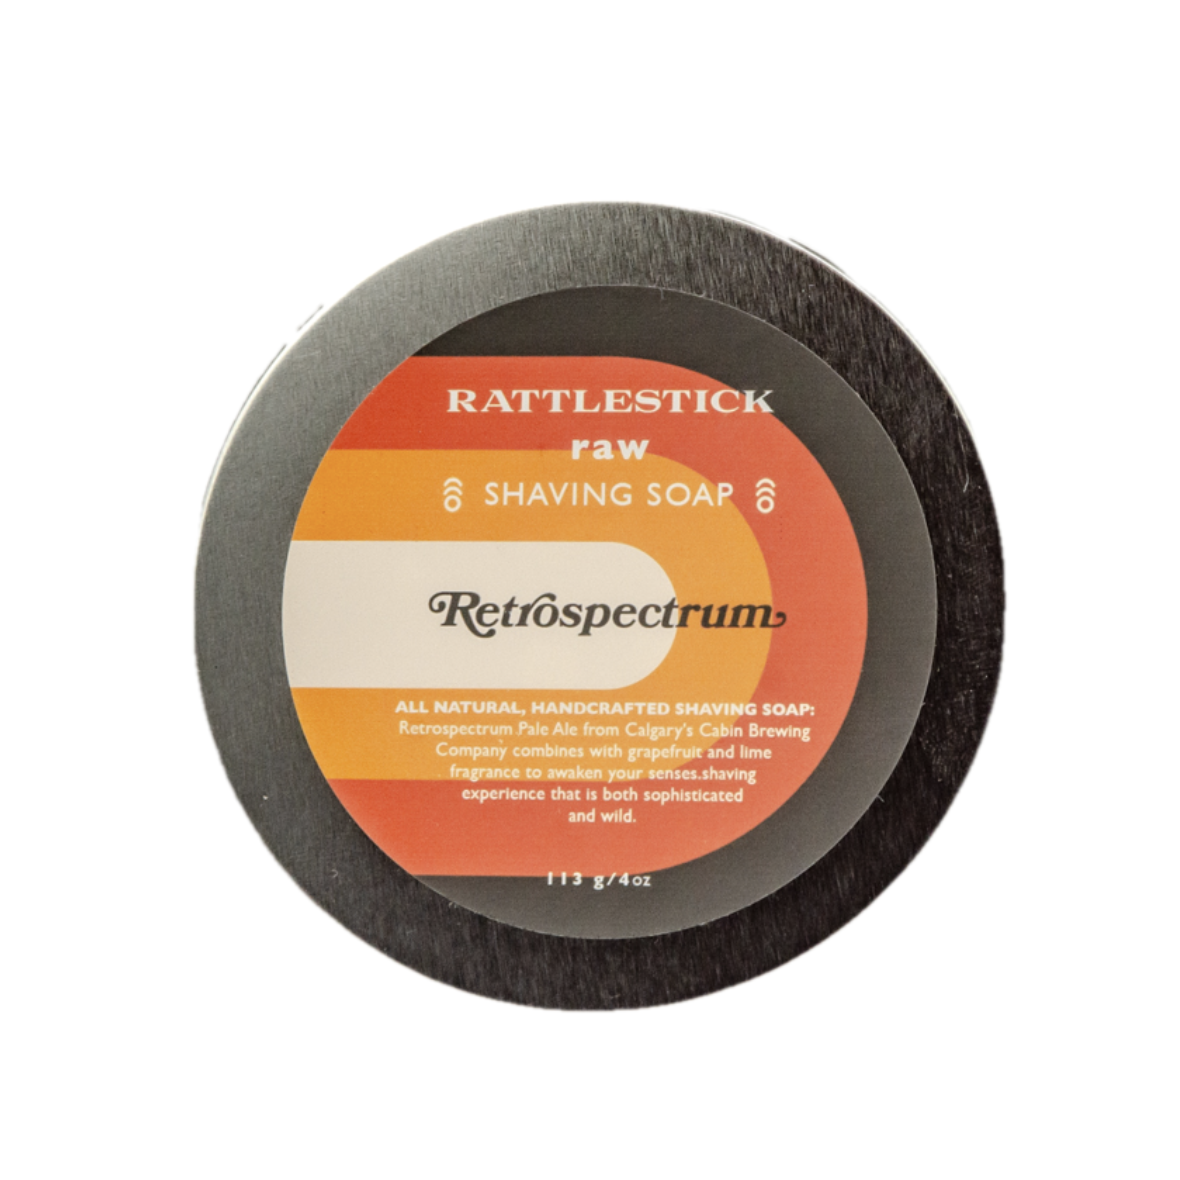 Rattlestick Shaving Soap - Retrospectrum